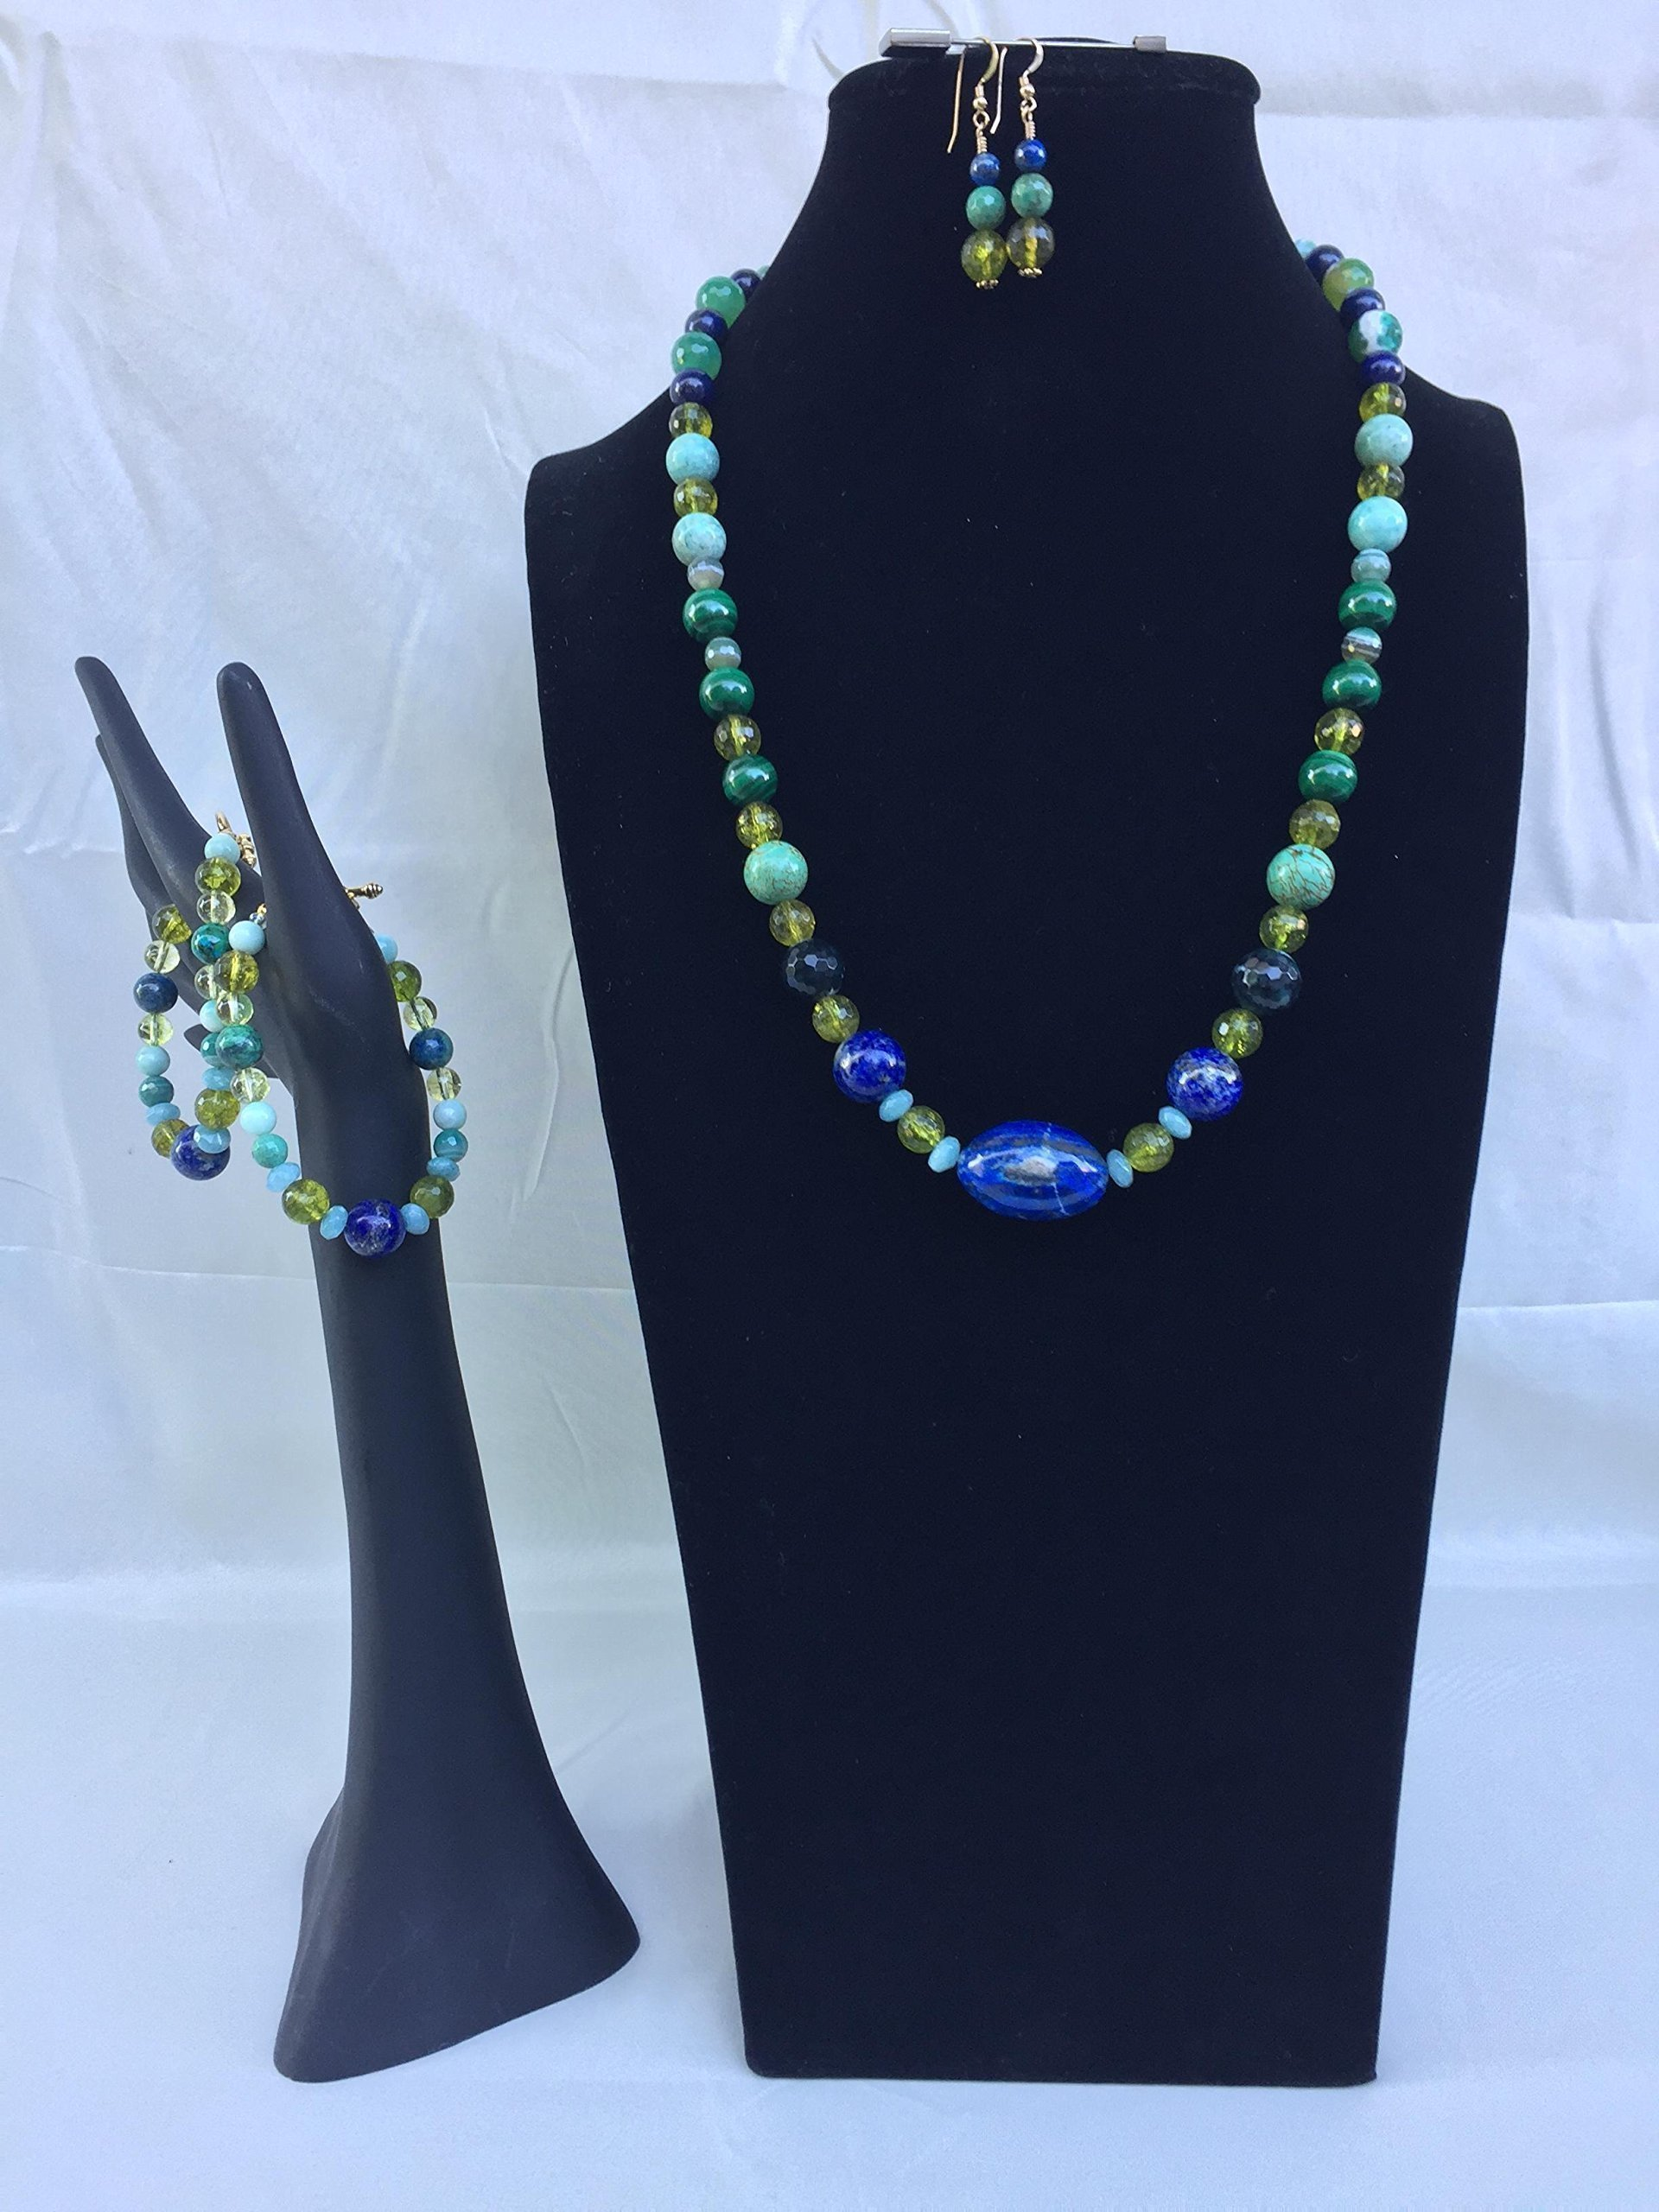 Unique and artsy handmade gemstone jewelry set with a necklace, two bracelets and matching dangle earrings. Lapis, Peridot and mixed gemstones. One of a kind